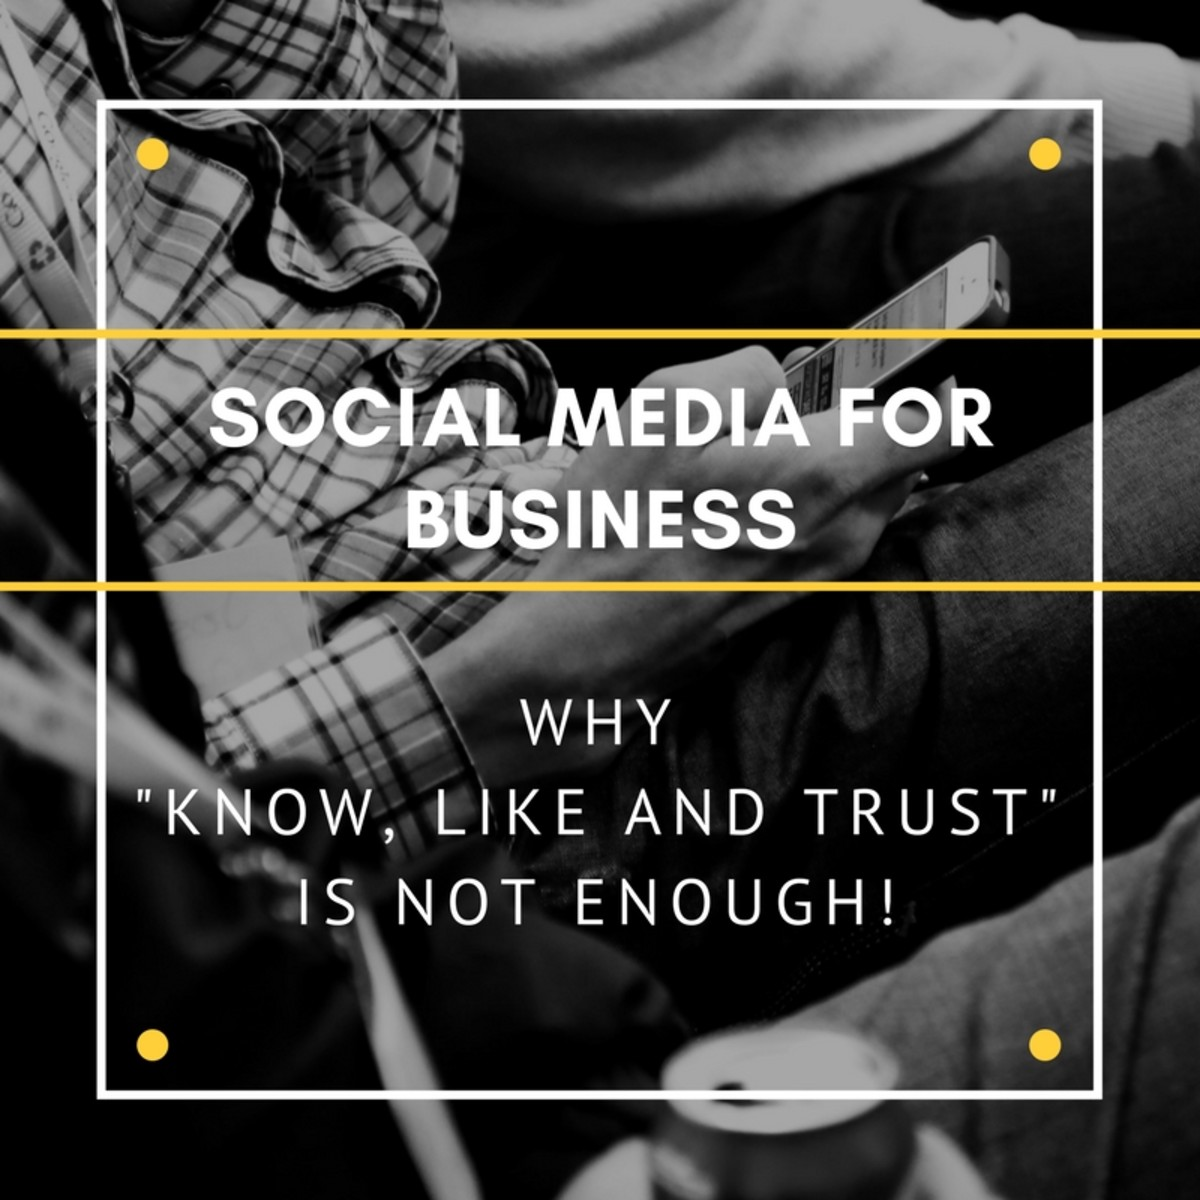 Social Media for Business: Why Know, Like and Trust Is Not Enough